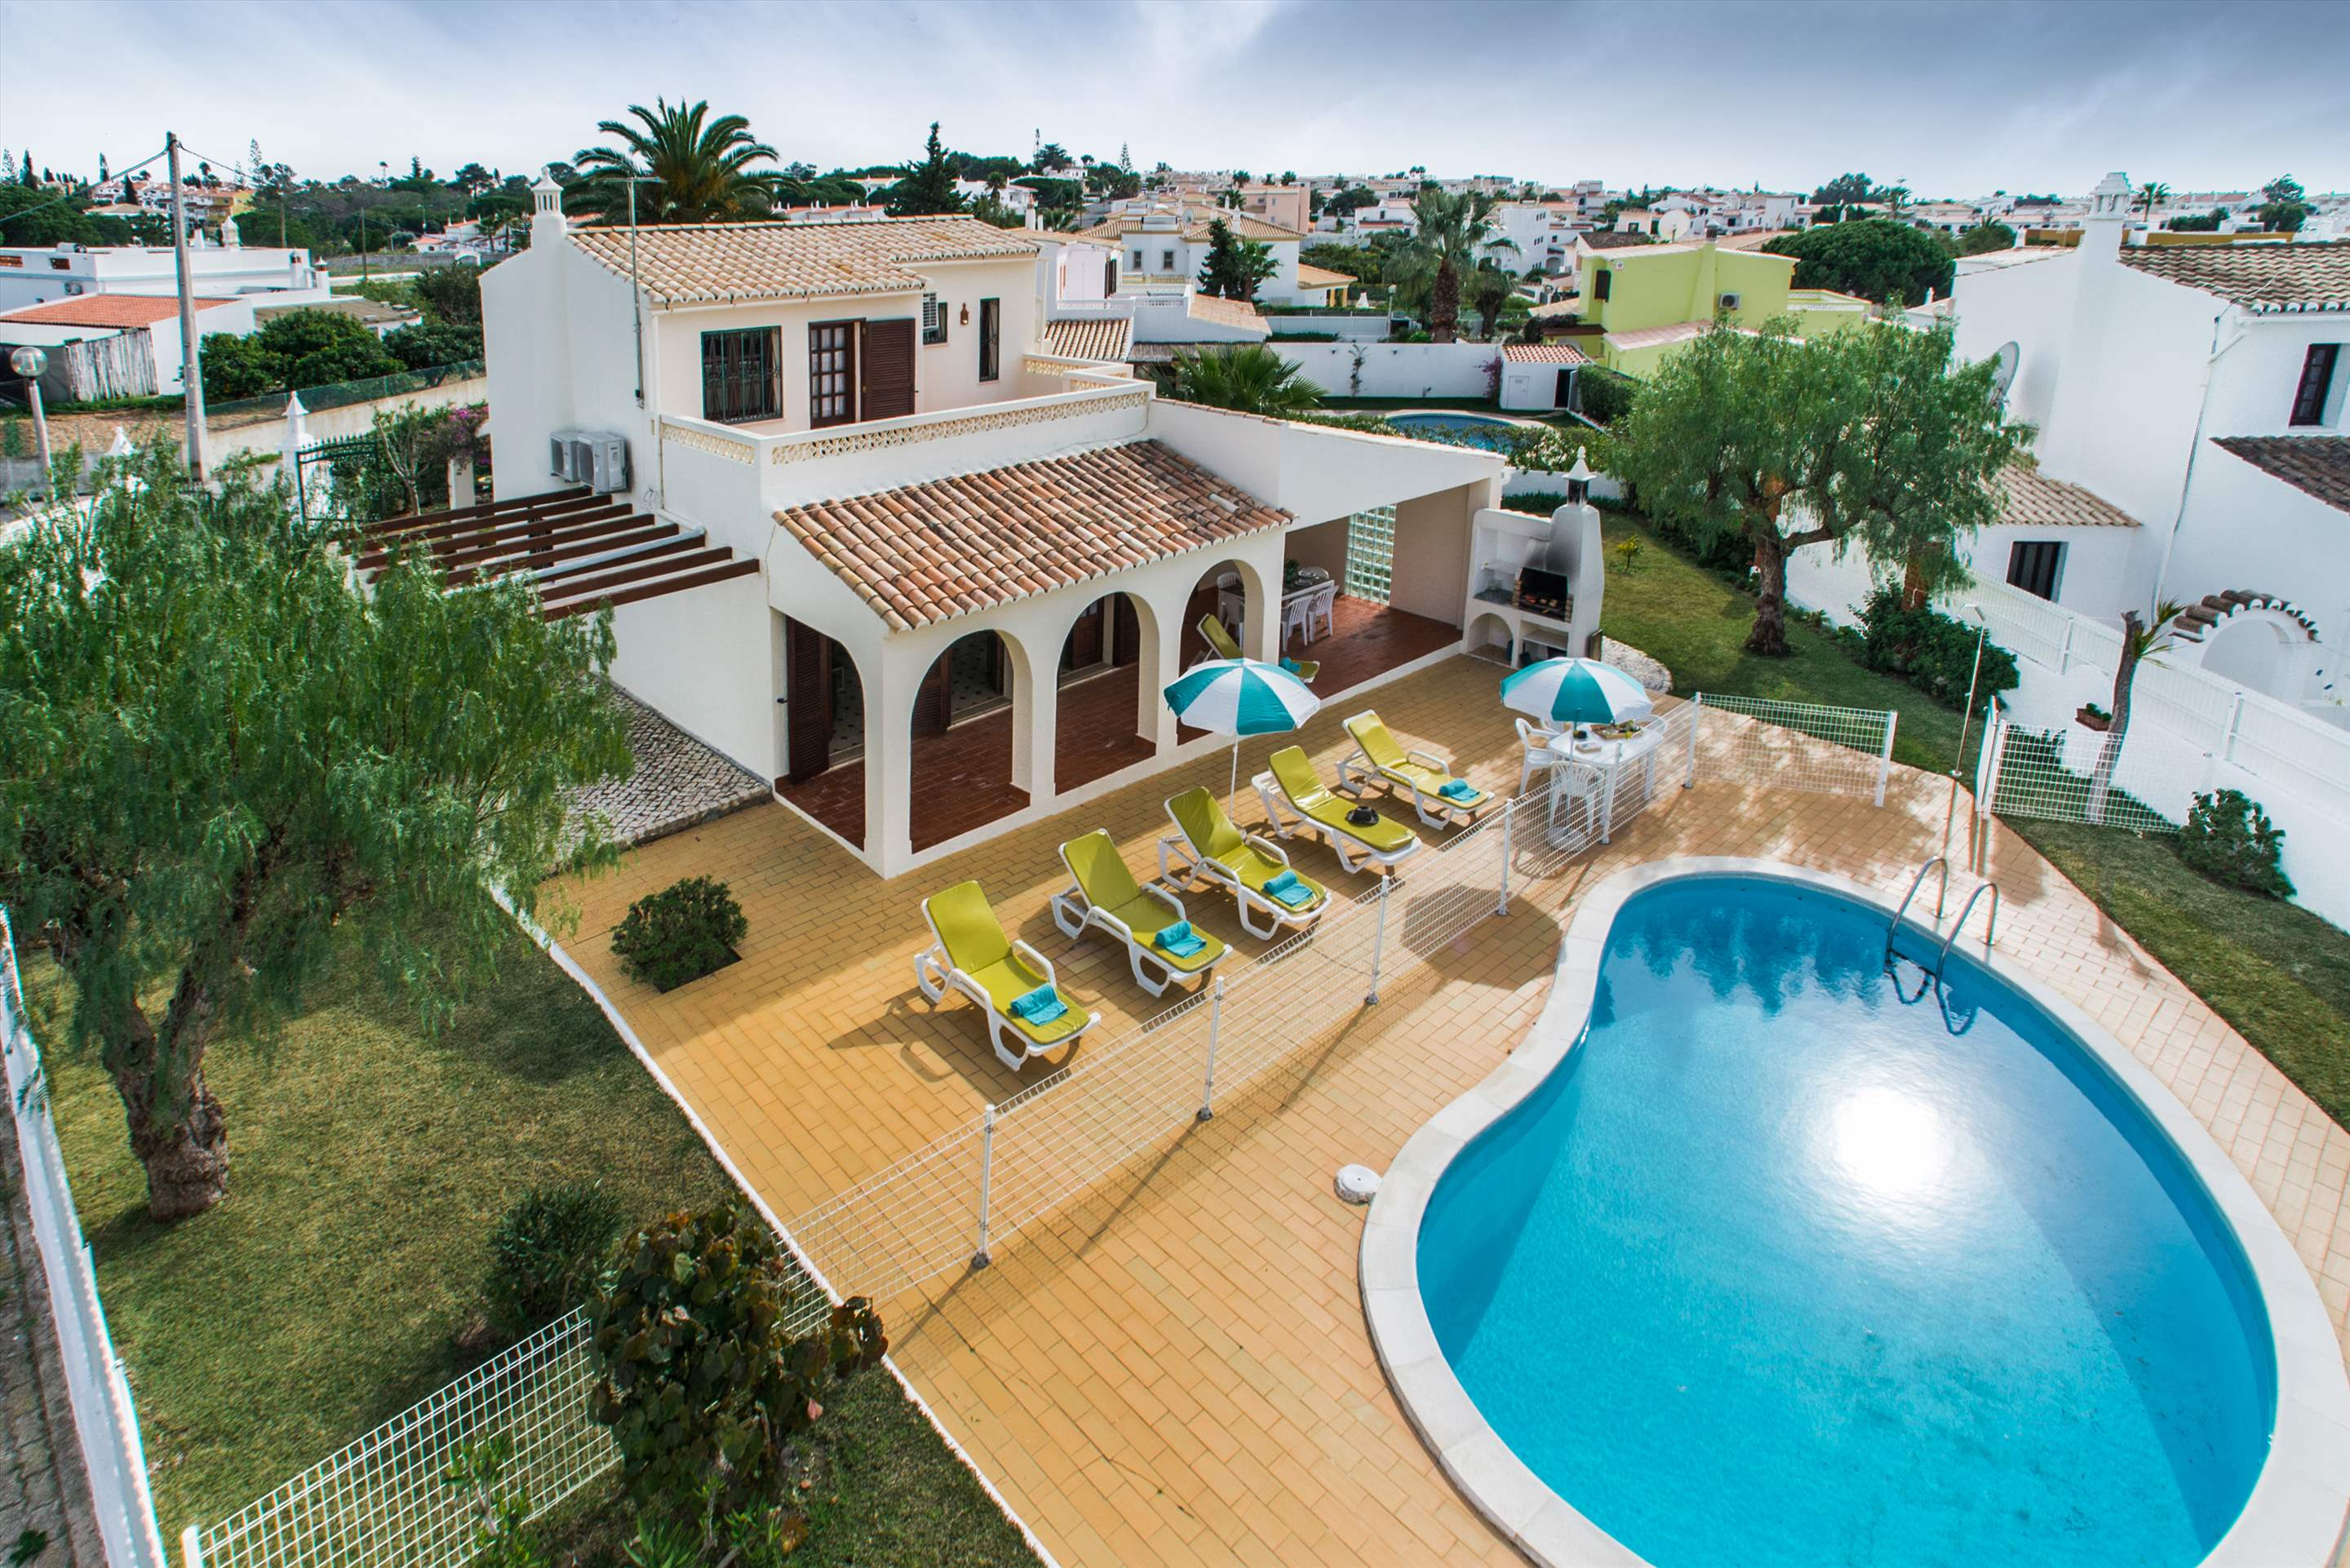 Casa Isabel, 5-6 persons rate, 3 bedroom villa in Gale, Vale da Parra and Guia, Algarve Photo #13